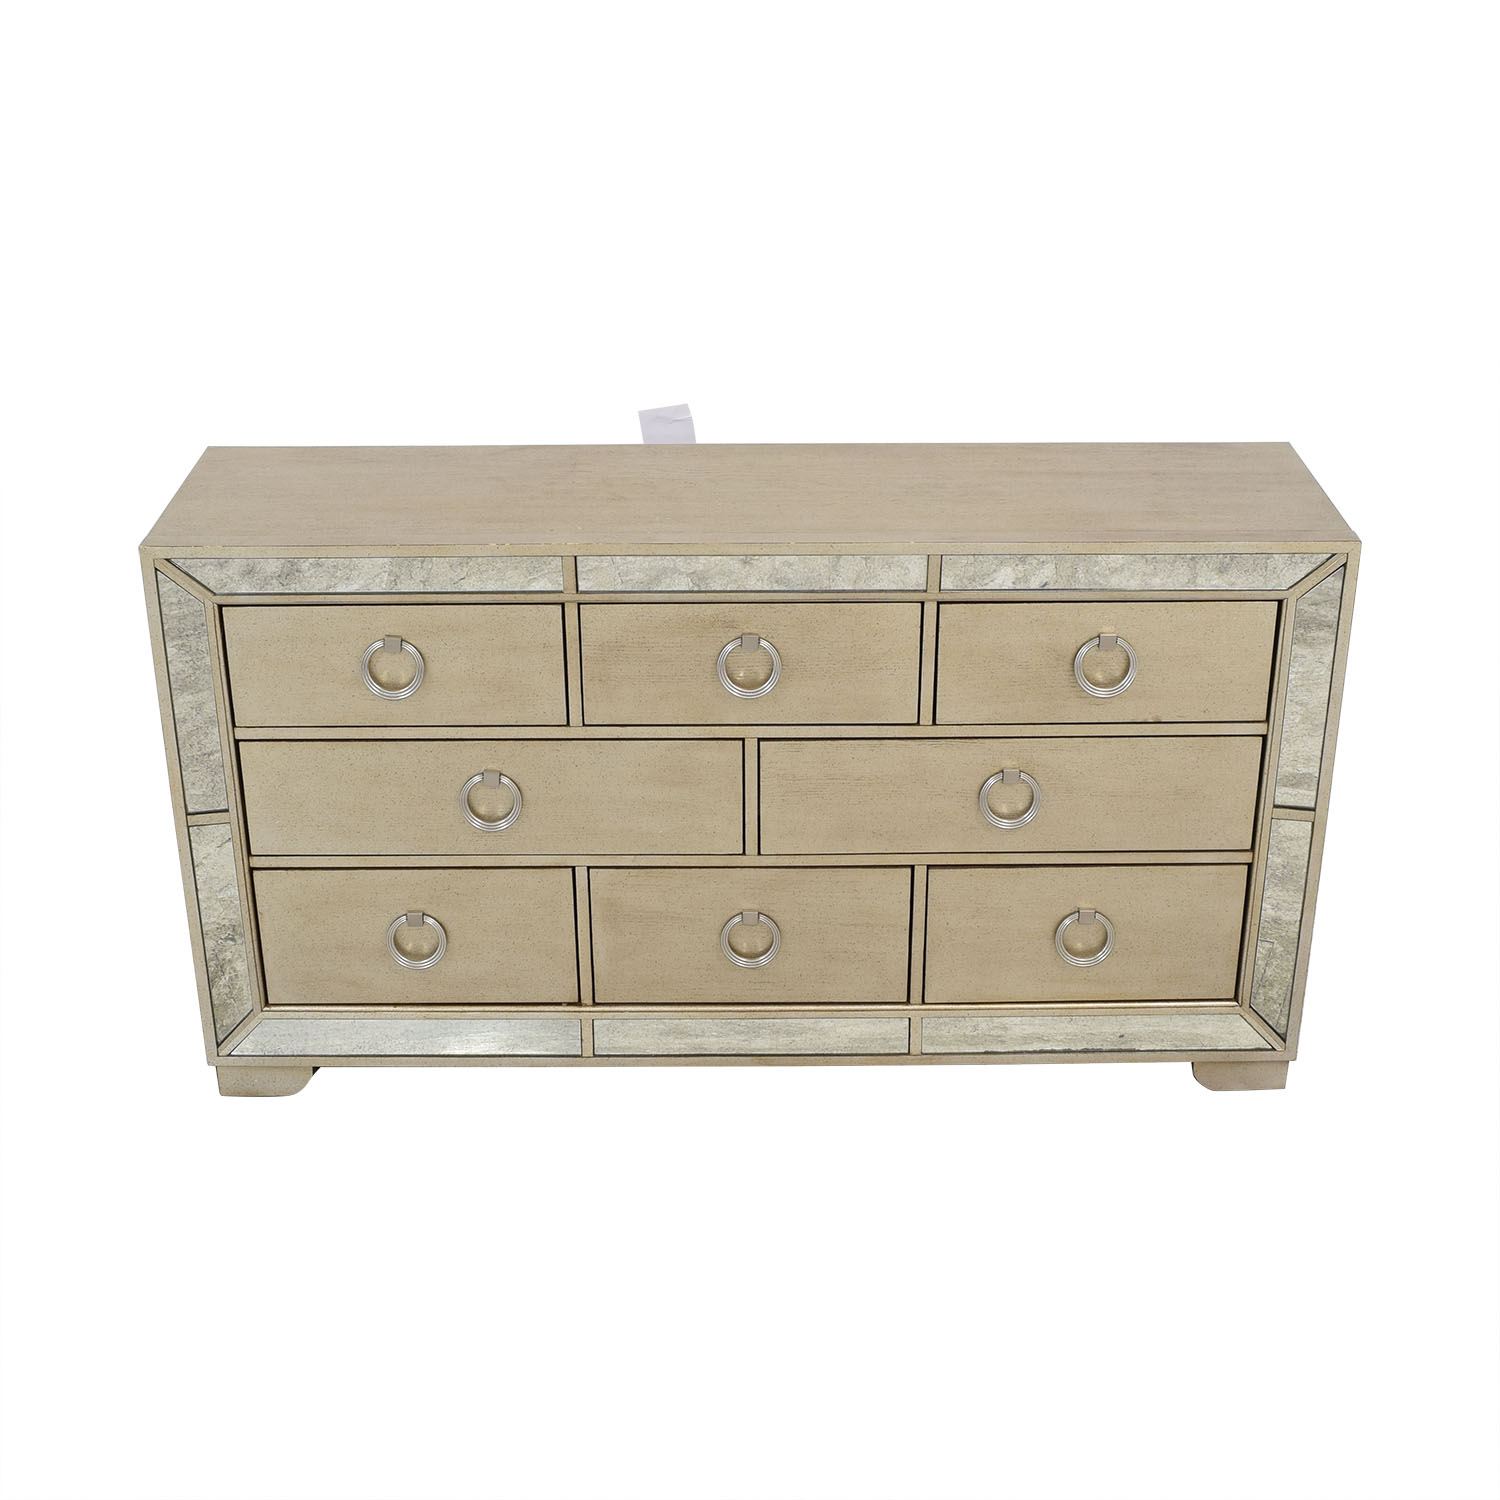 Macy's Macy's Ailey Eight Drawer Dresser on sale